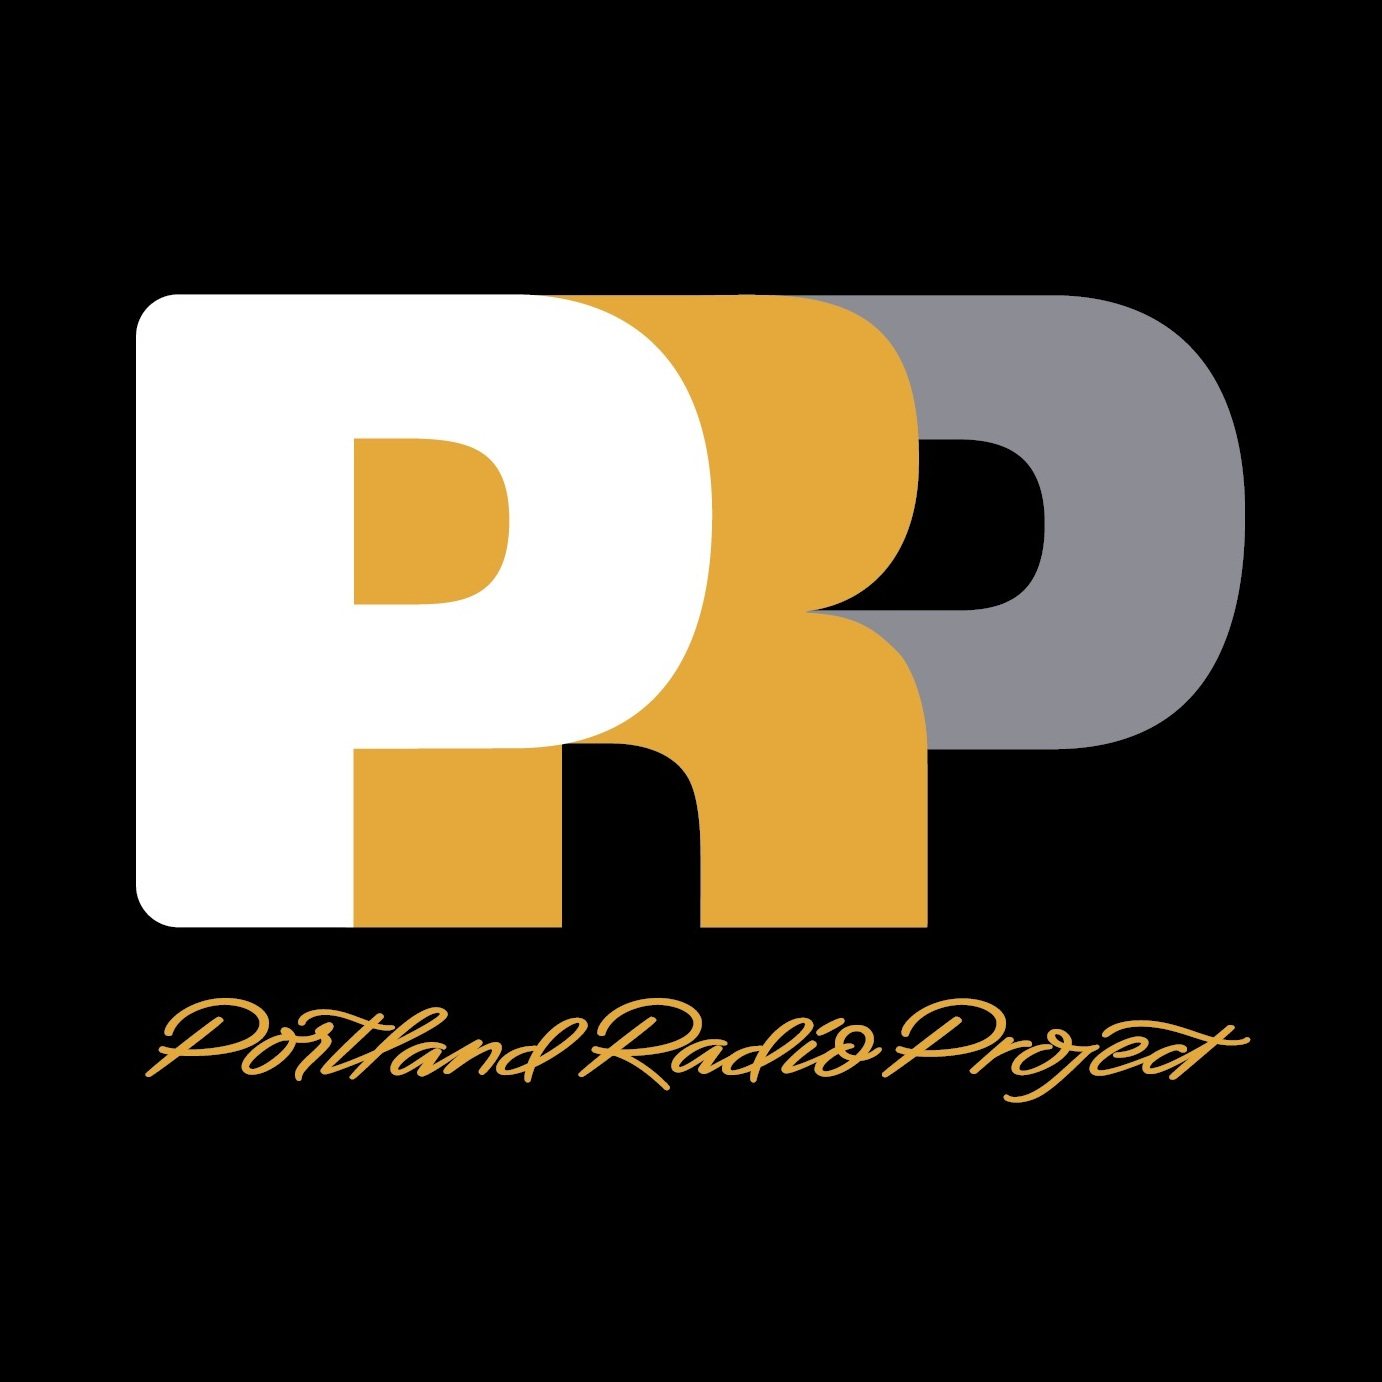 PRP is a local, independent, nonprofit radio station here in Portland. By featuring local musicians (they play a local song every 15 minutes!), reporting on important public service work, and partnering with local groups, PRP is giving the microphone back to community voices - those of artists, nonprofits, and small businesses. PRP has been honored for outstanding achievement with two Edward R. Murrow Awards, the highest honor in electronic journalism.  Website  |  Facebook  |  YouTube  |  Soundcloud